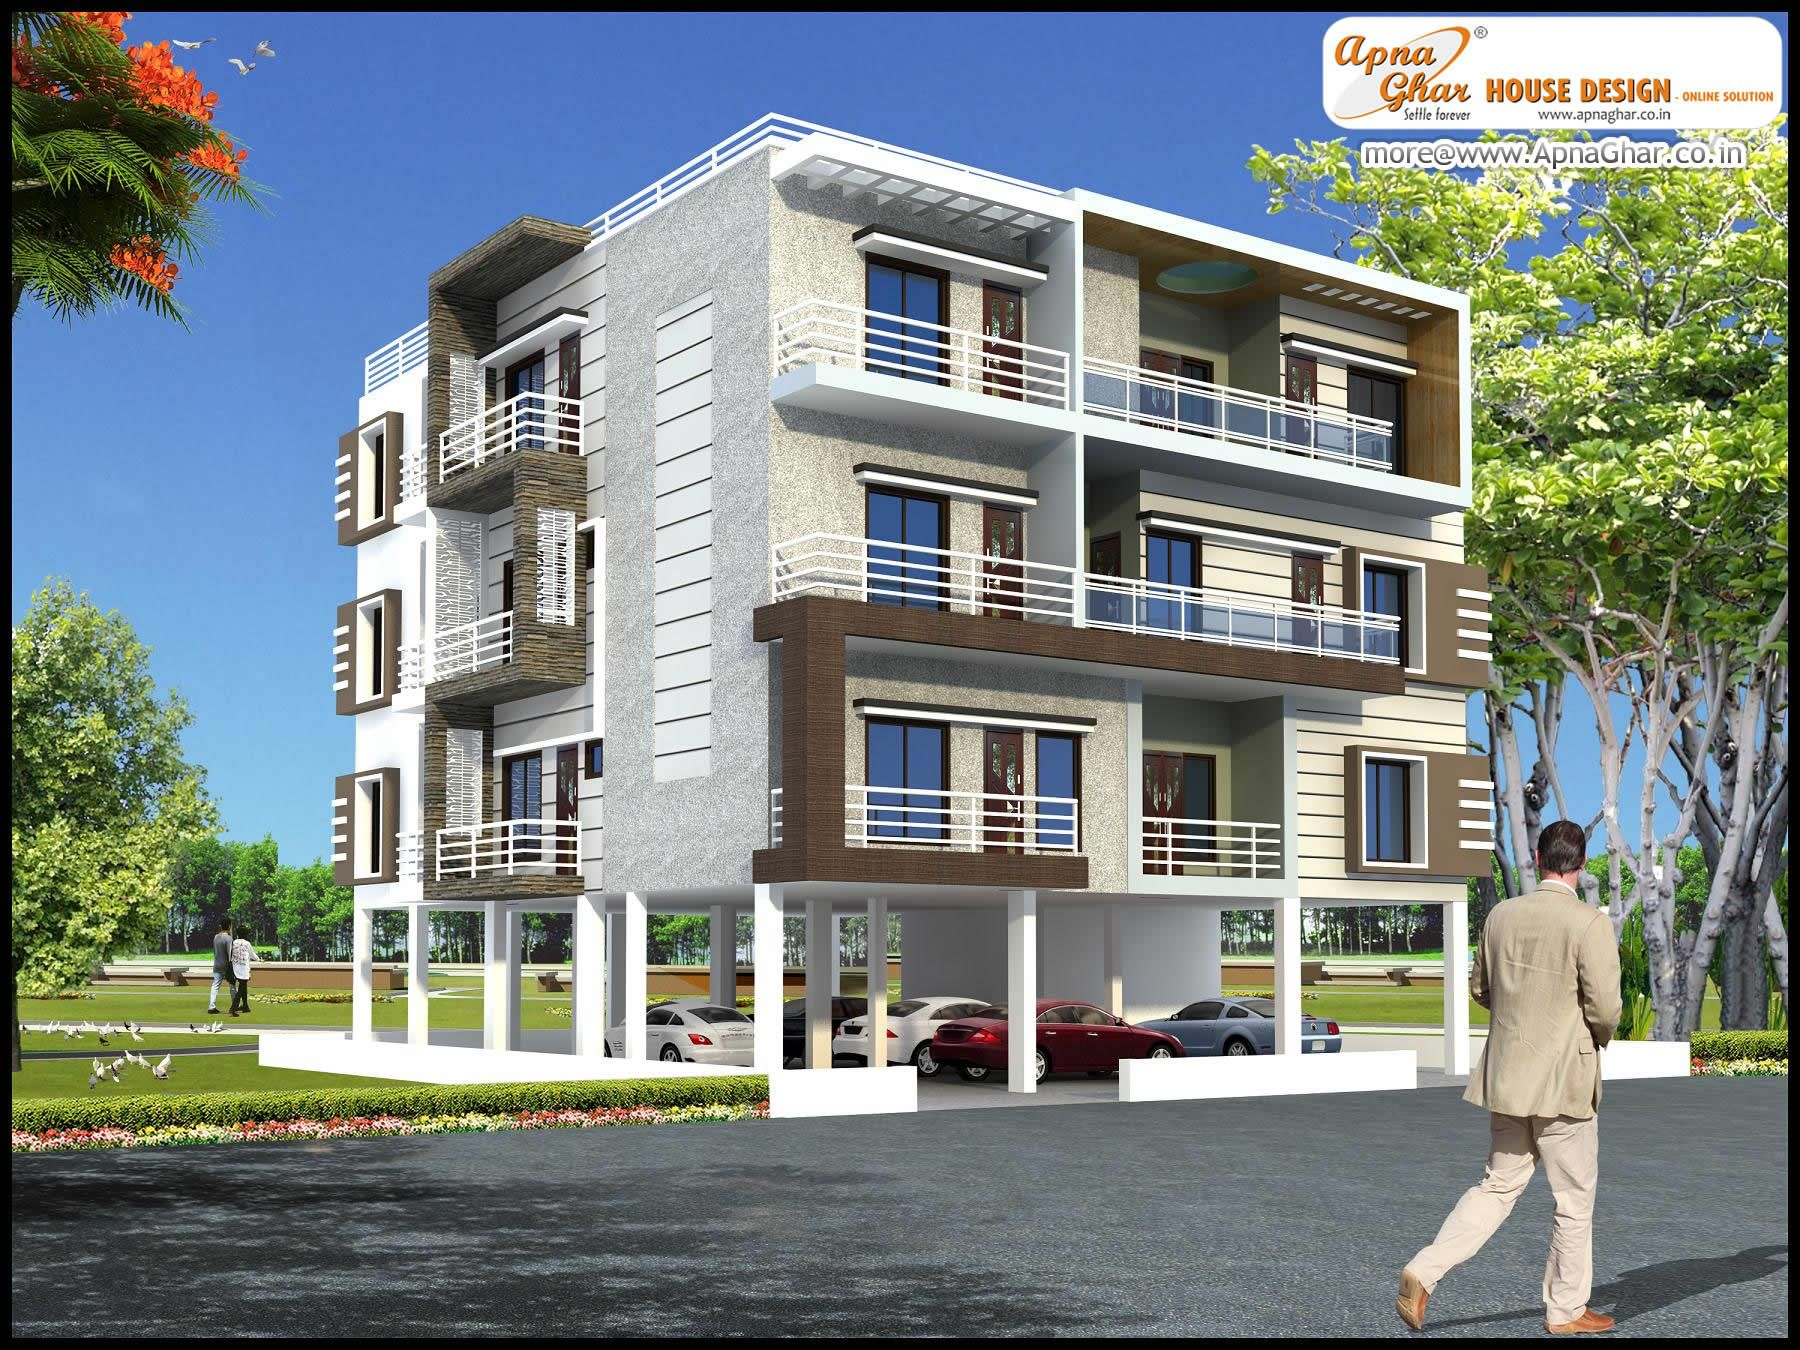 Delicieux Modern Apartment Exterior Design An Online Complete Architectural Solution  Provider Company Click This Link To View